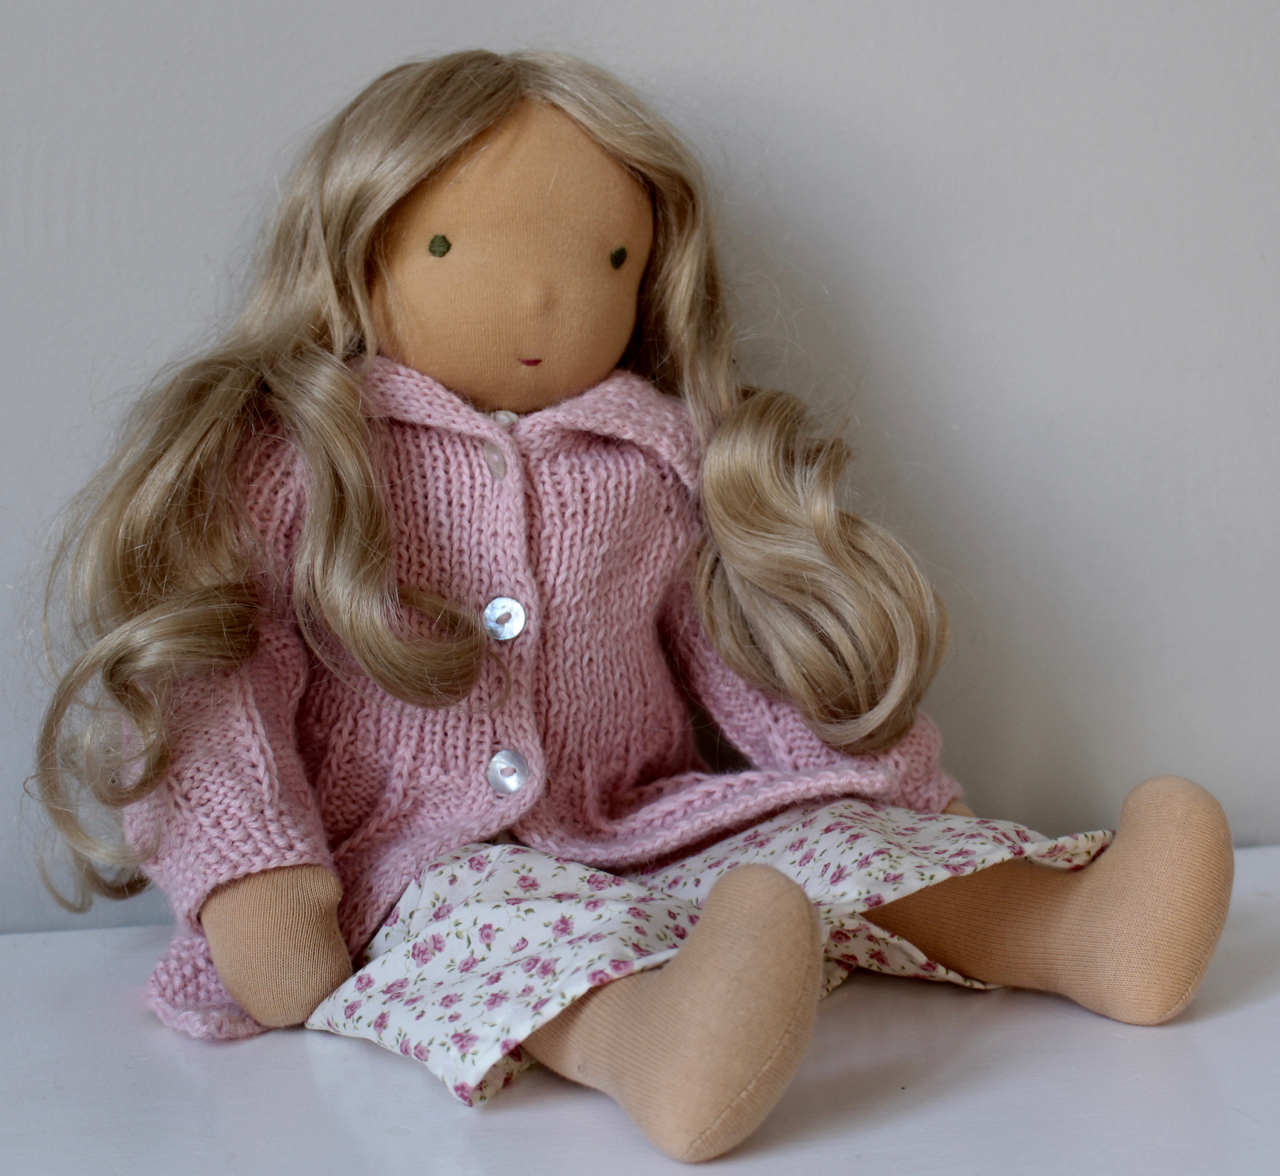 Waldorf doll with human hair and pink cardigan